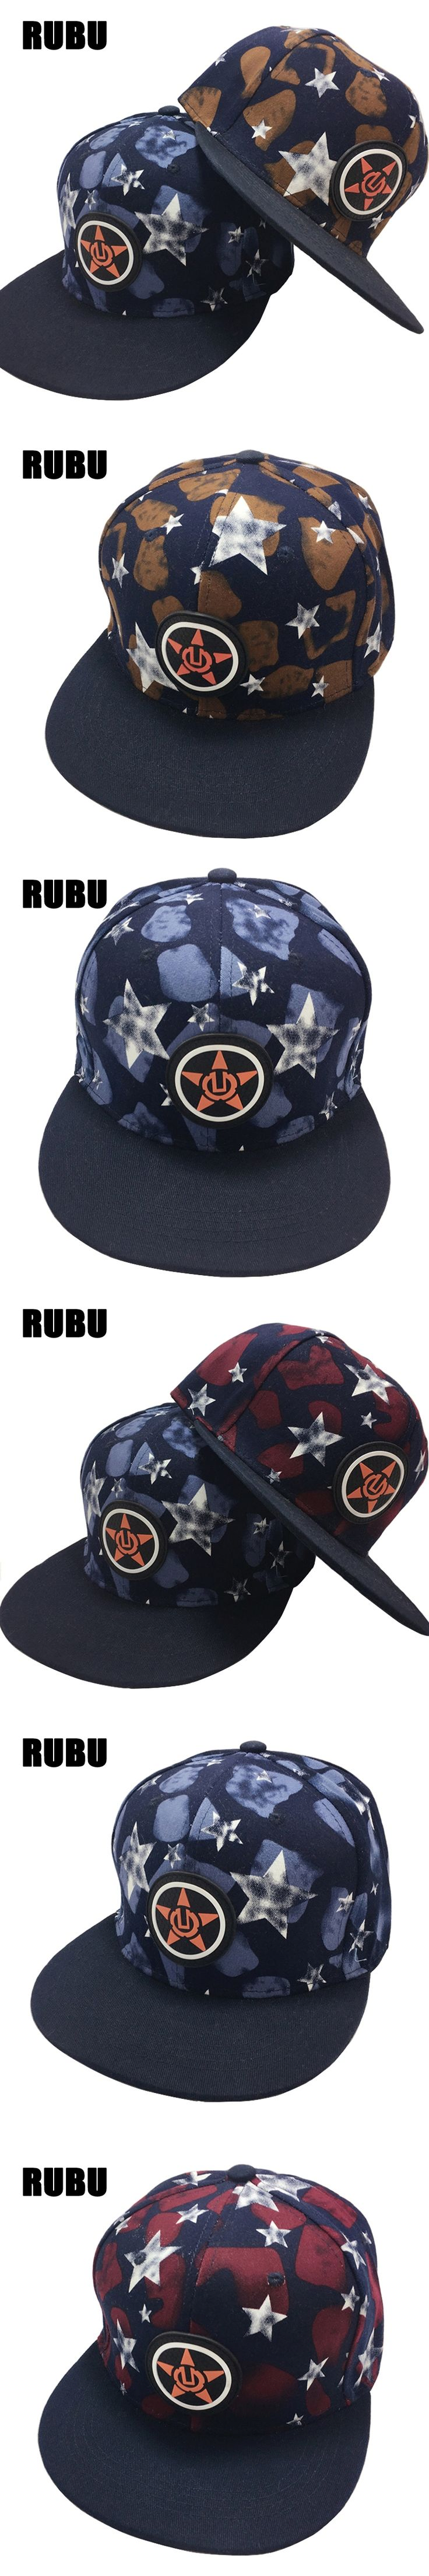 Fashion star logo Snapback Hats men Bone Snap Back gorras Men Hip Hop Cap Fitted Baseball Cap k pop Flat-brimmed Hat Star hats